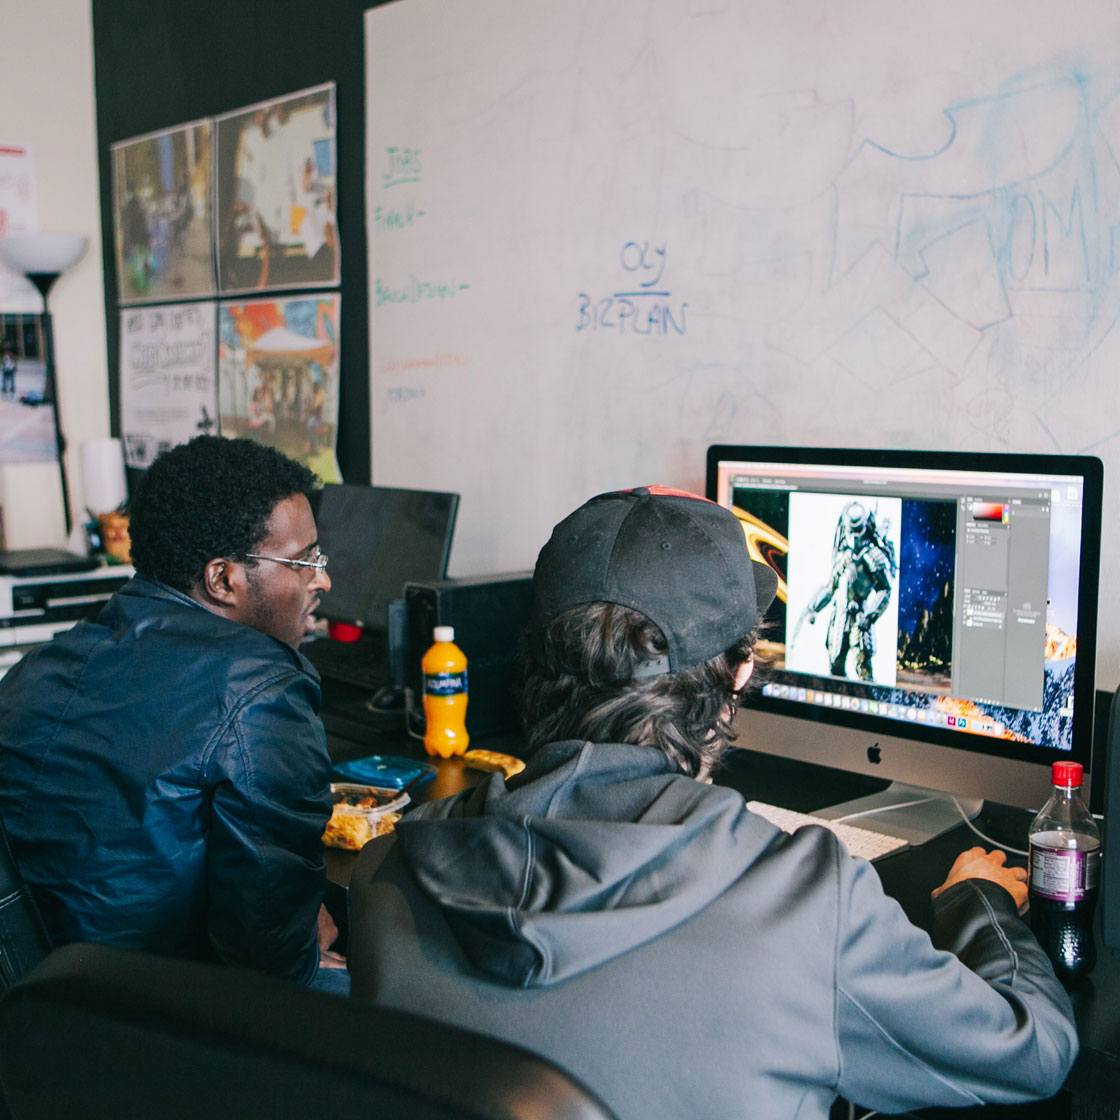 Two people sitting in front of a computer working on an illustration